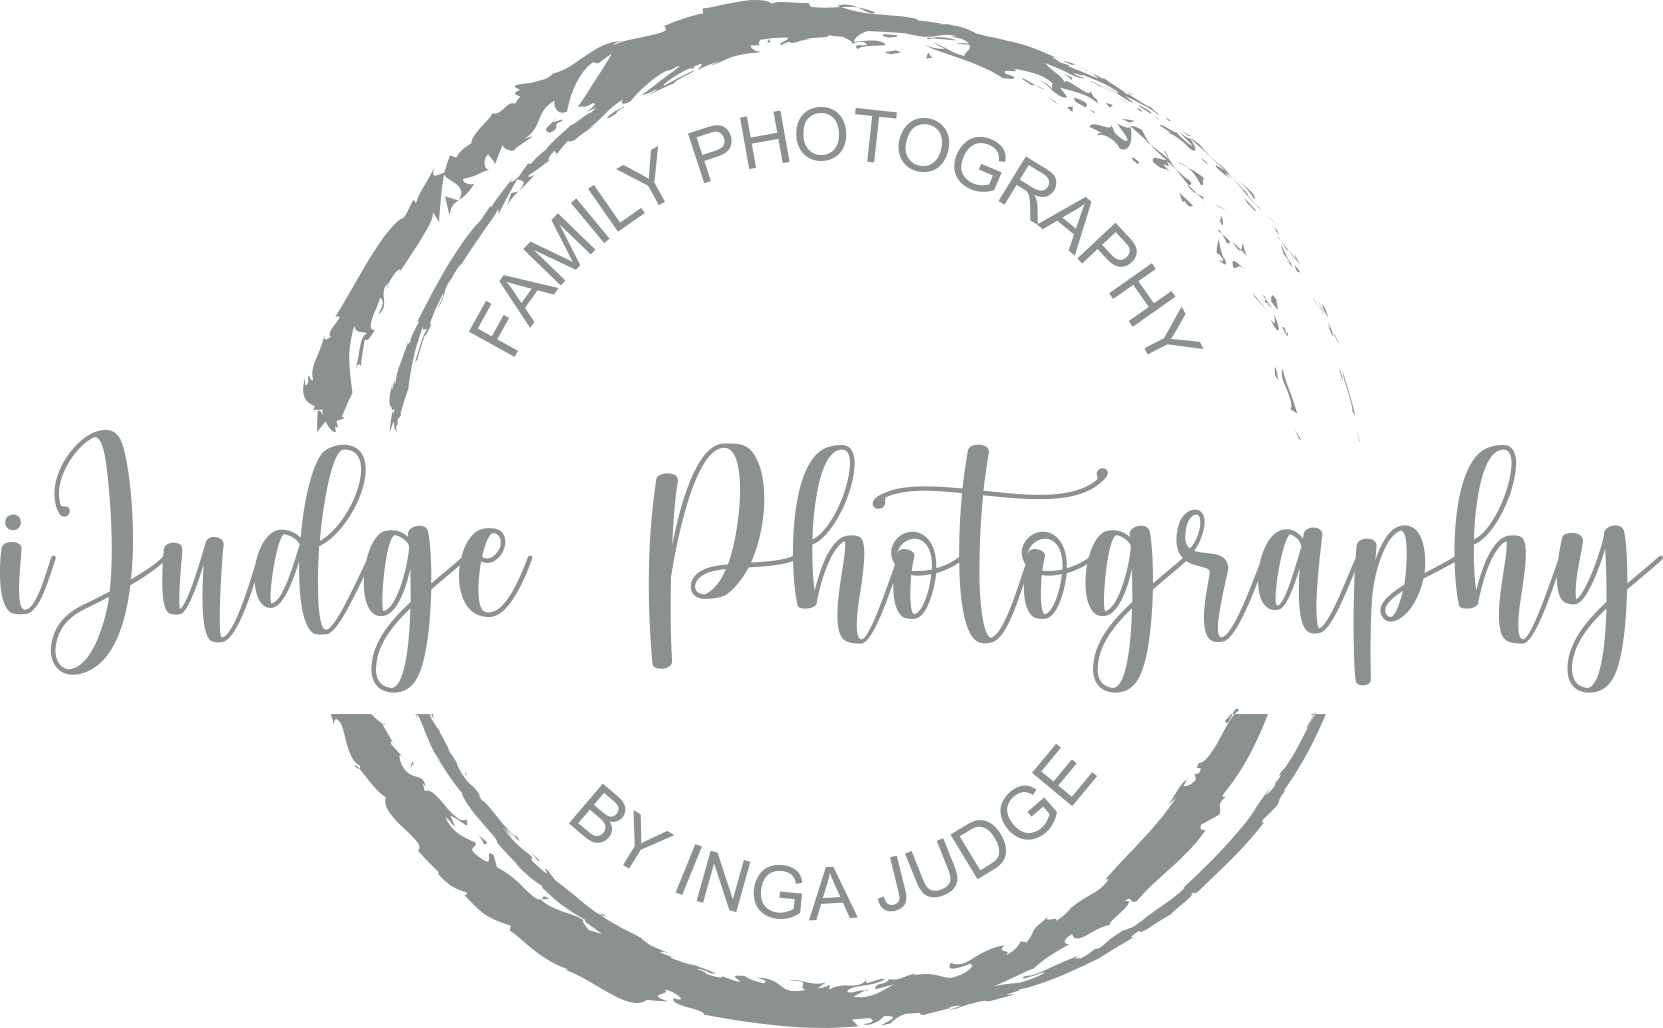 Family Photographer in South West London & Surrey: Richmond Upon Thames – St Margarets – Twickenham – Teddington – Kingston upon Thames – Hampton Court – East Molesey – Surbiton – Wimbledon – Barnes – Chiswick – Esher – Cobham – Virginia Water – Weybridge